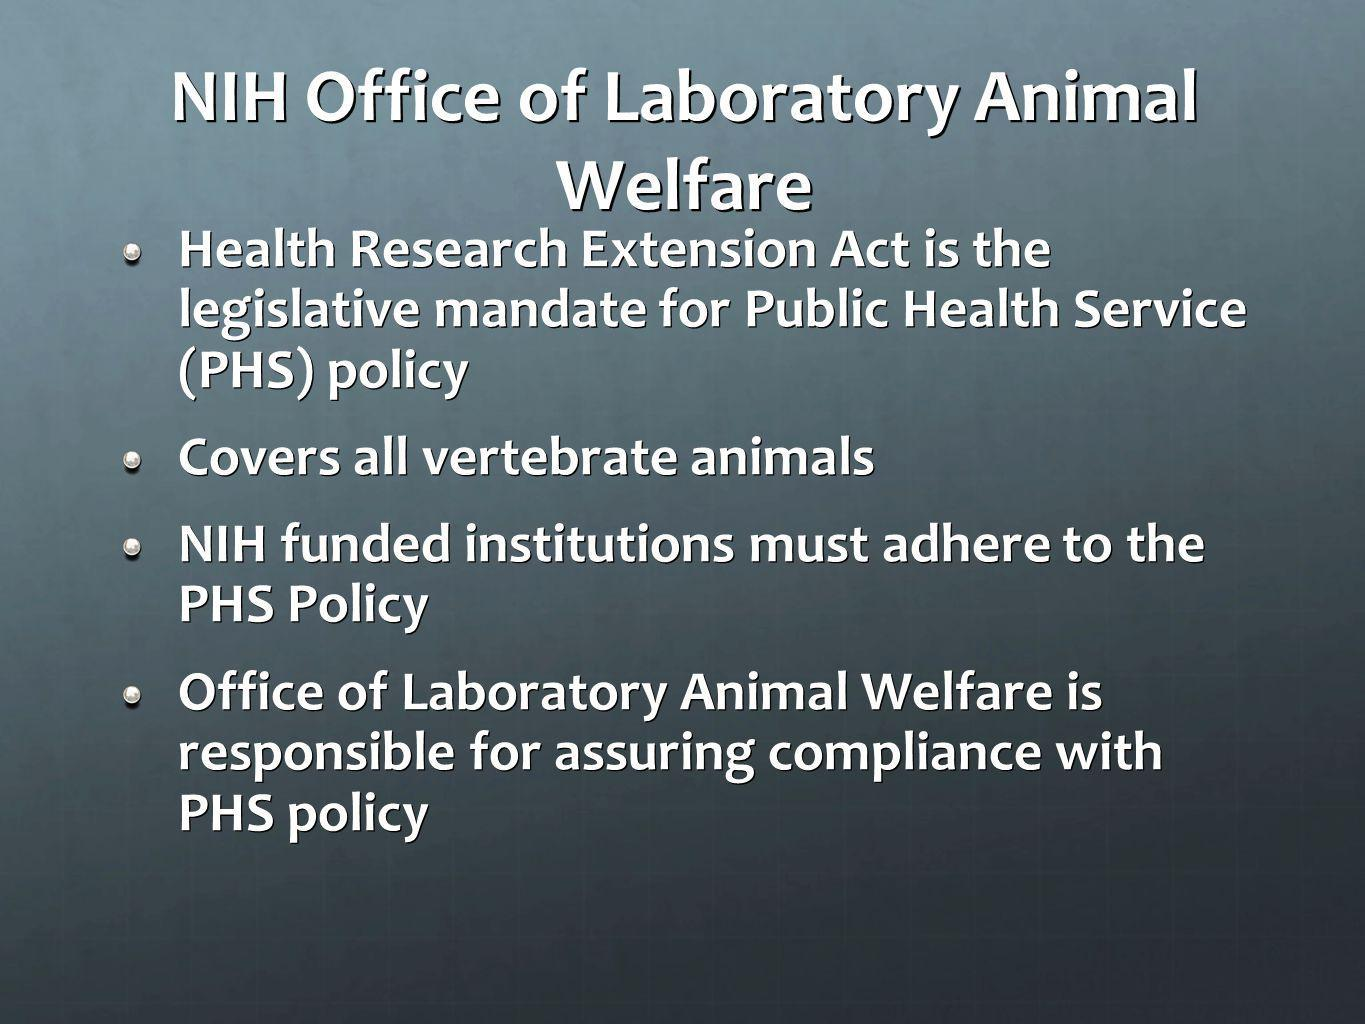 NIH Office of Laboratory Animal Welfare